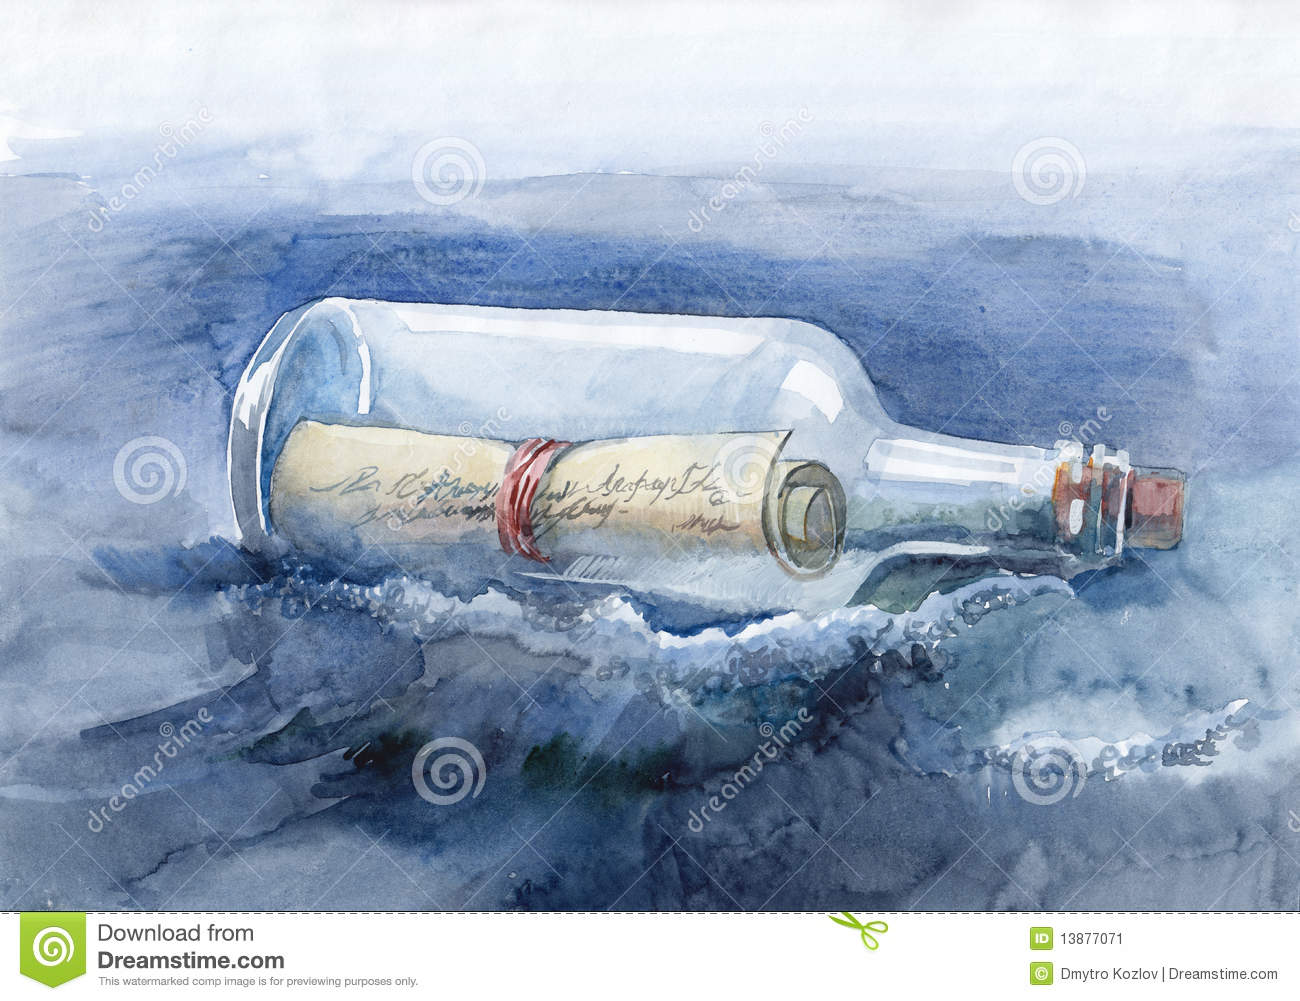 Message In A Bottle Stock Image - Image: 13877071